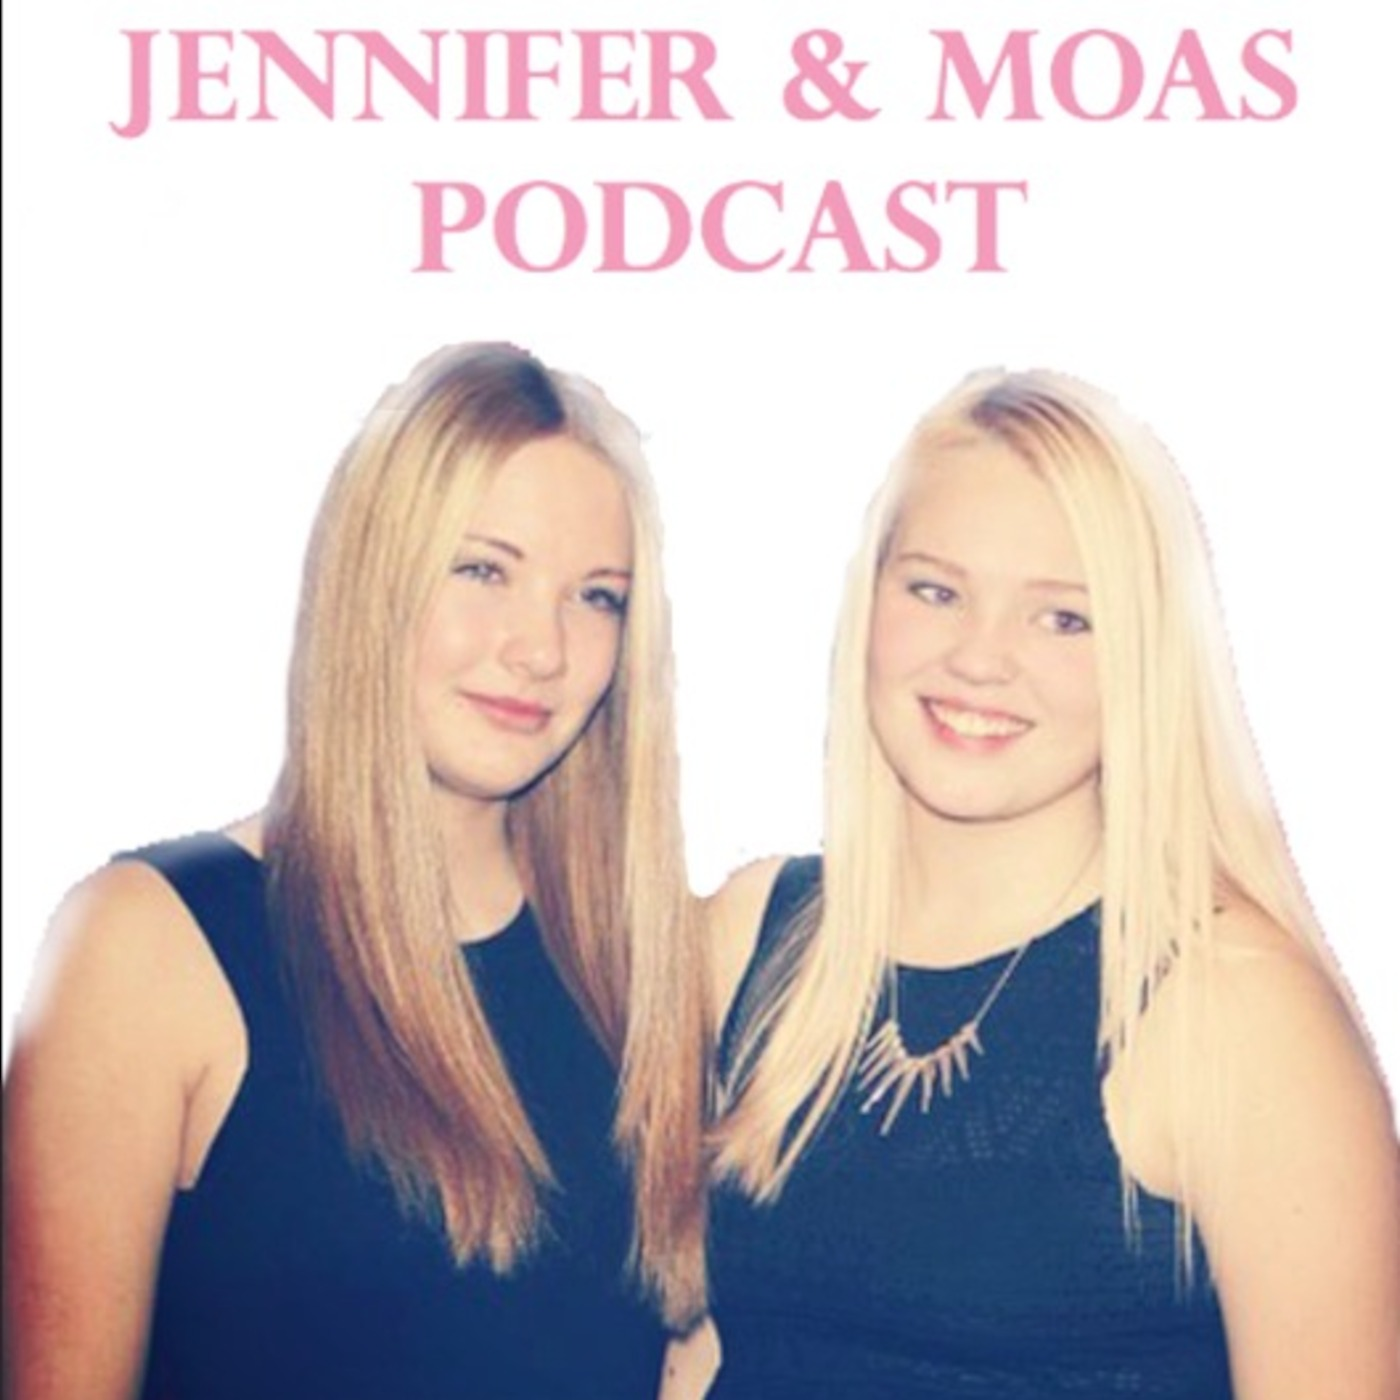 Jennifer & Moas Podcast